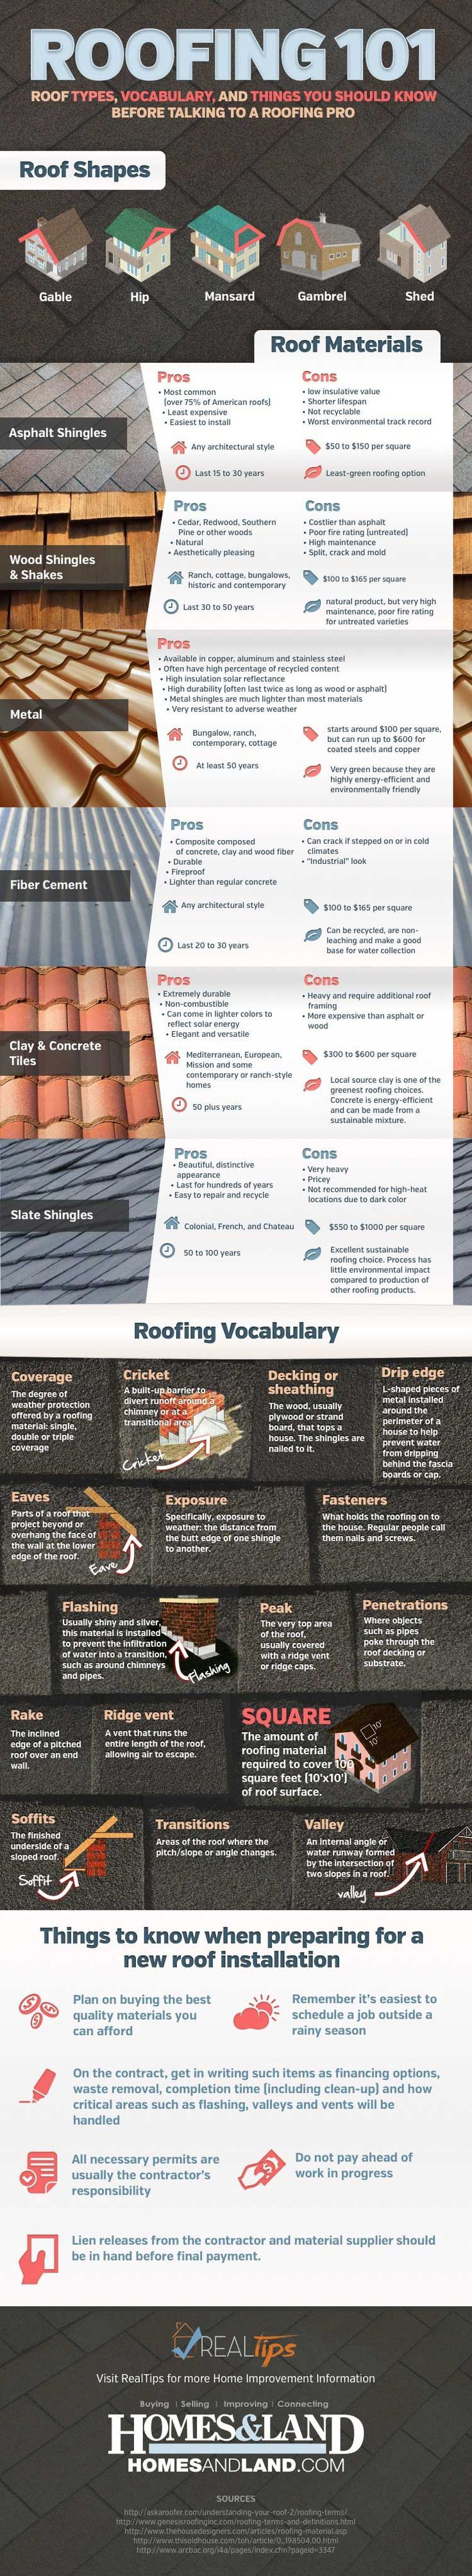 Roof Types, Vocabulary and Things You Should Know | Maison plain ...